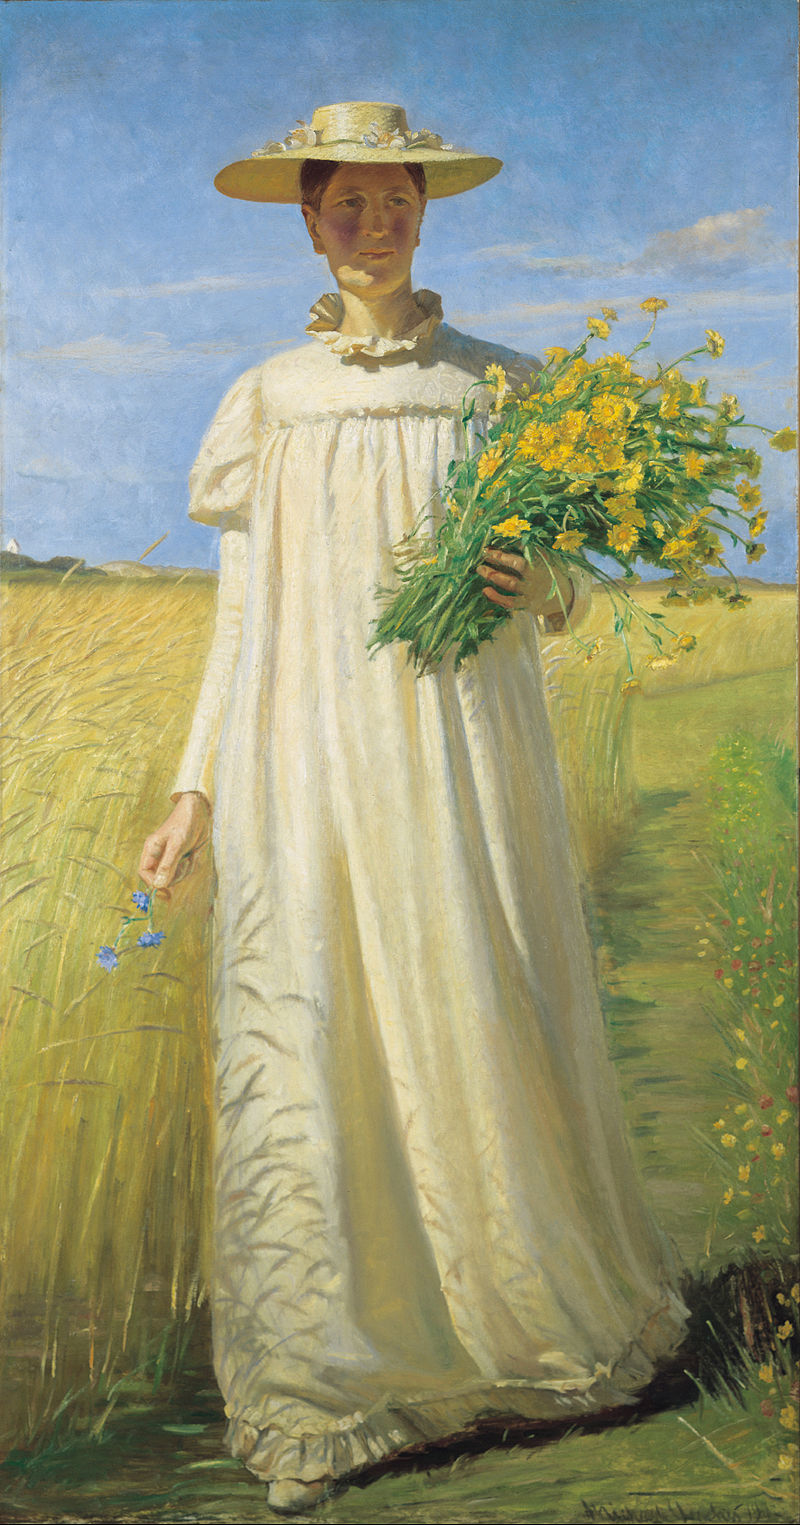 Anna Ancher returning from the field by Michael Ancher, 1901